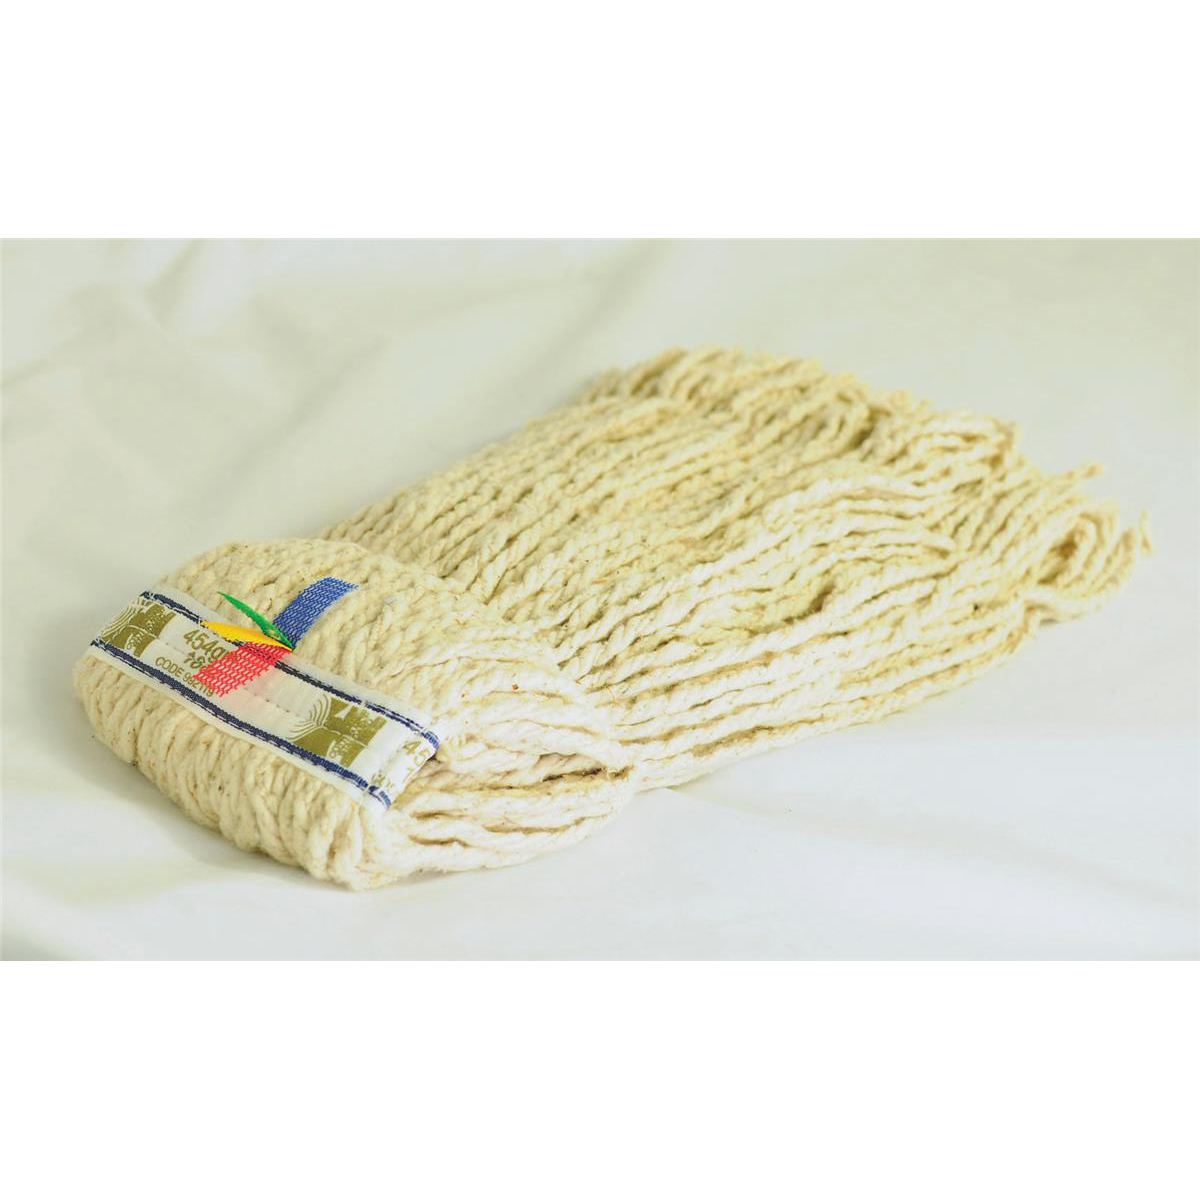 Image for 16oz/450g Multifold Hygienic Kentucky Mop Head with Assorted removable tabs